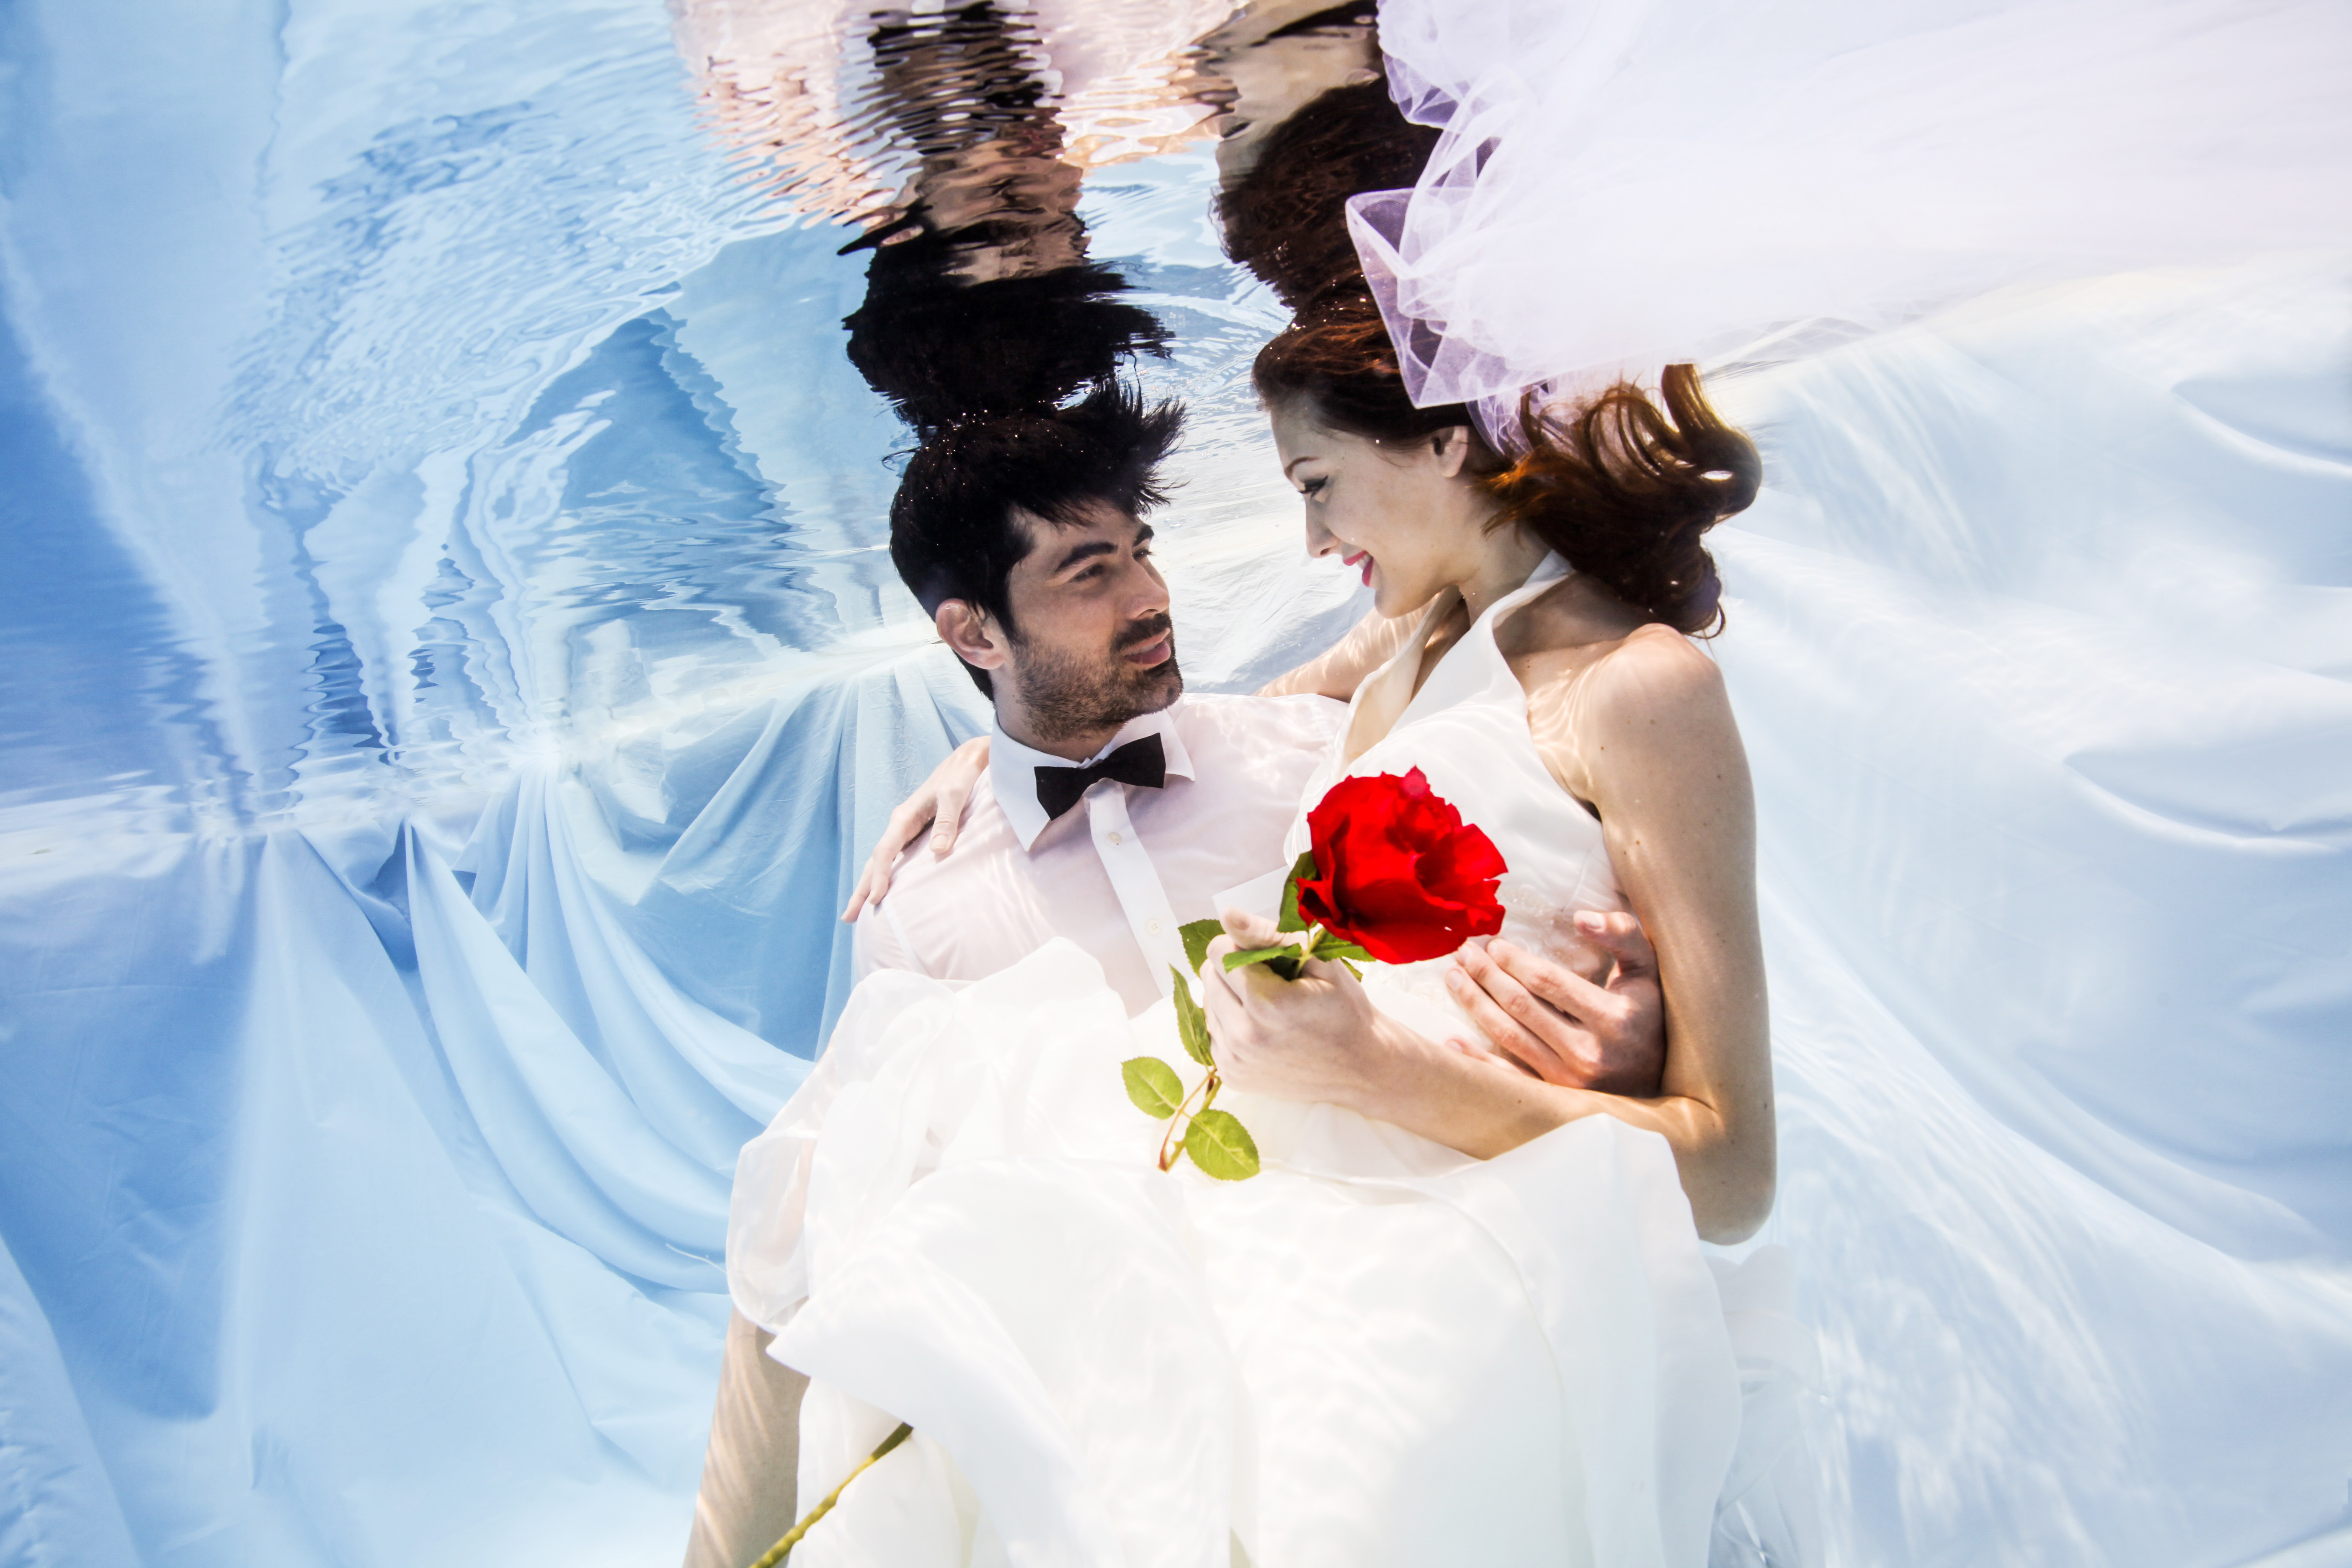 Underwater prewedding photography SG